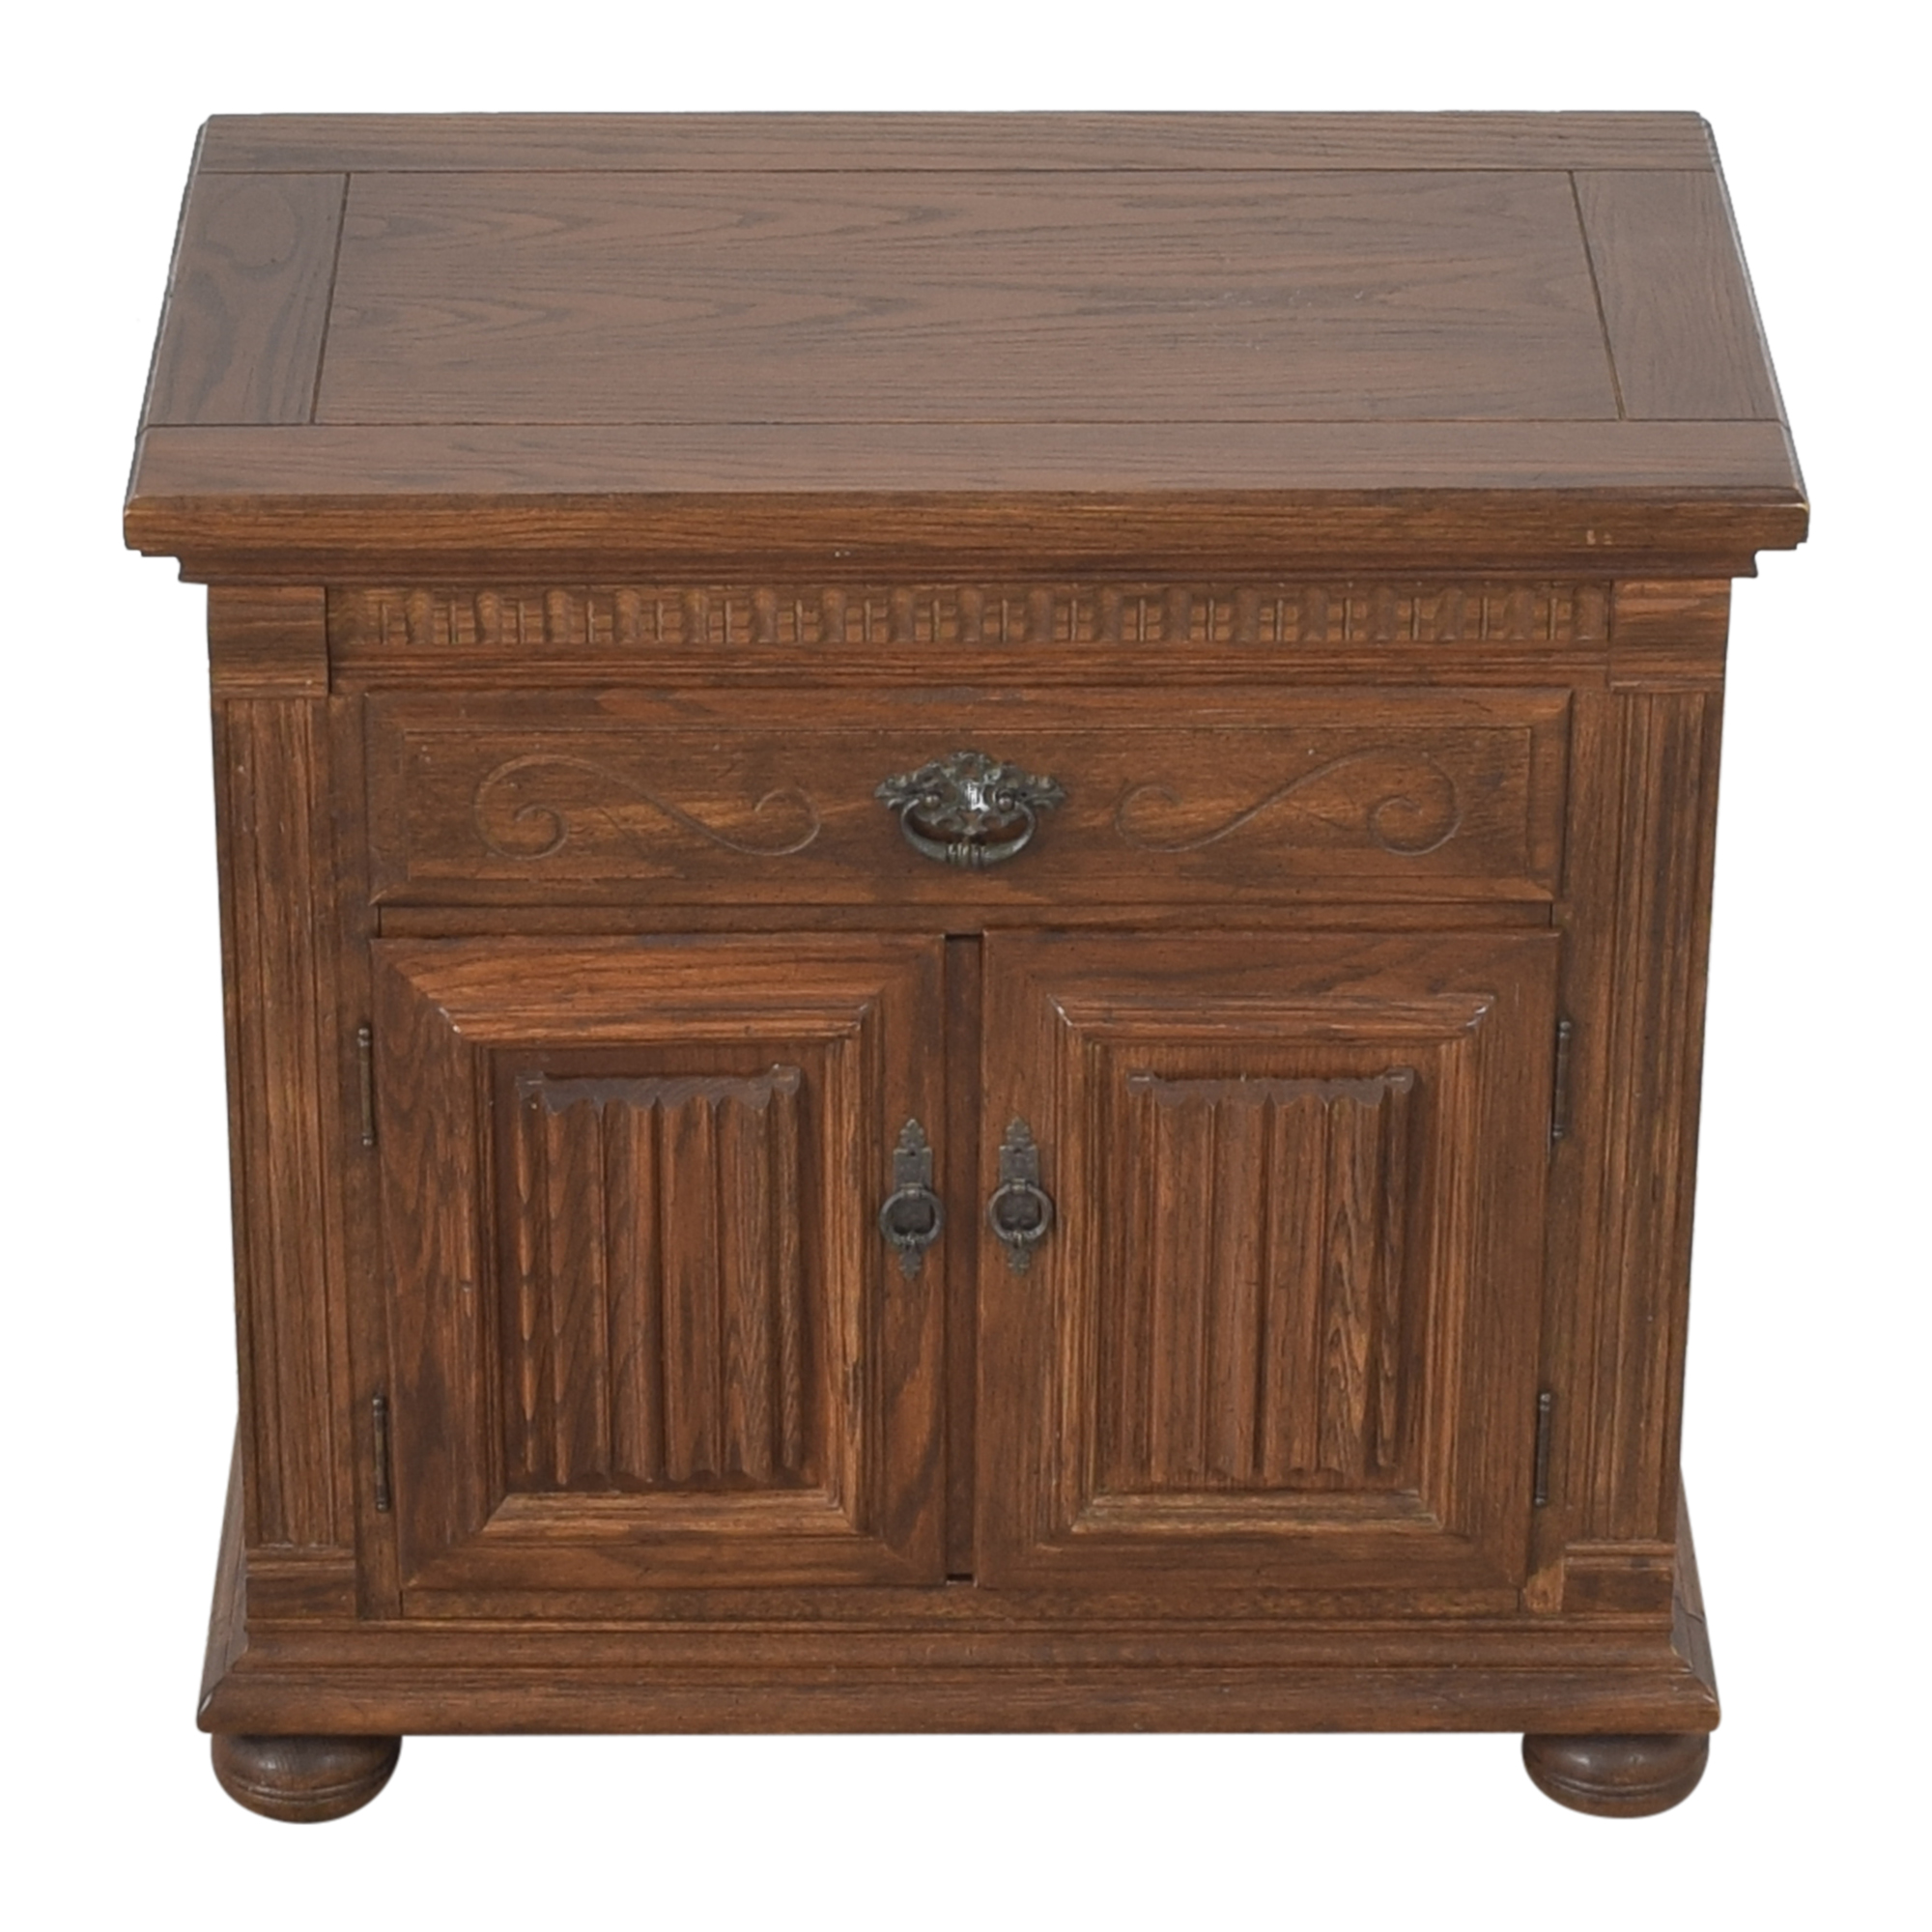 Ethan Allen Ethan Allen Royal Charter Commode Nightstand  Tables